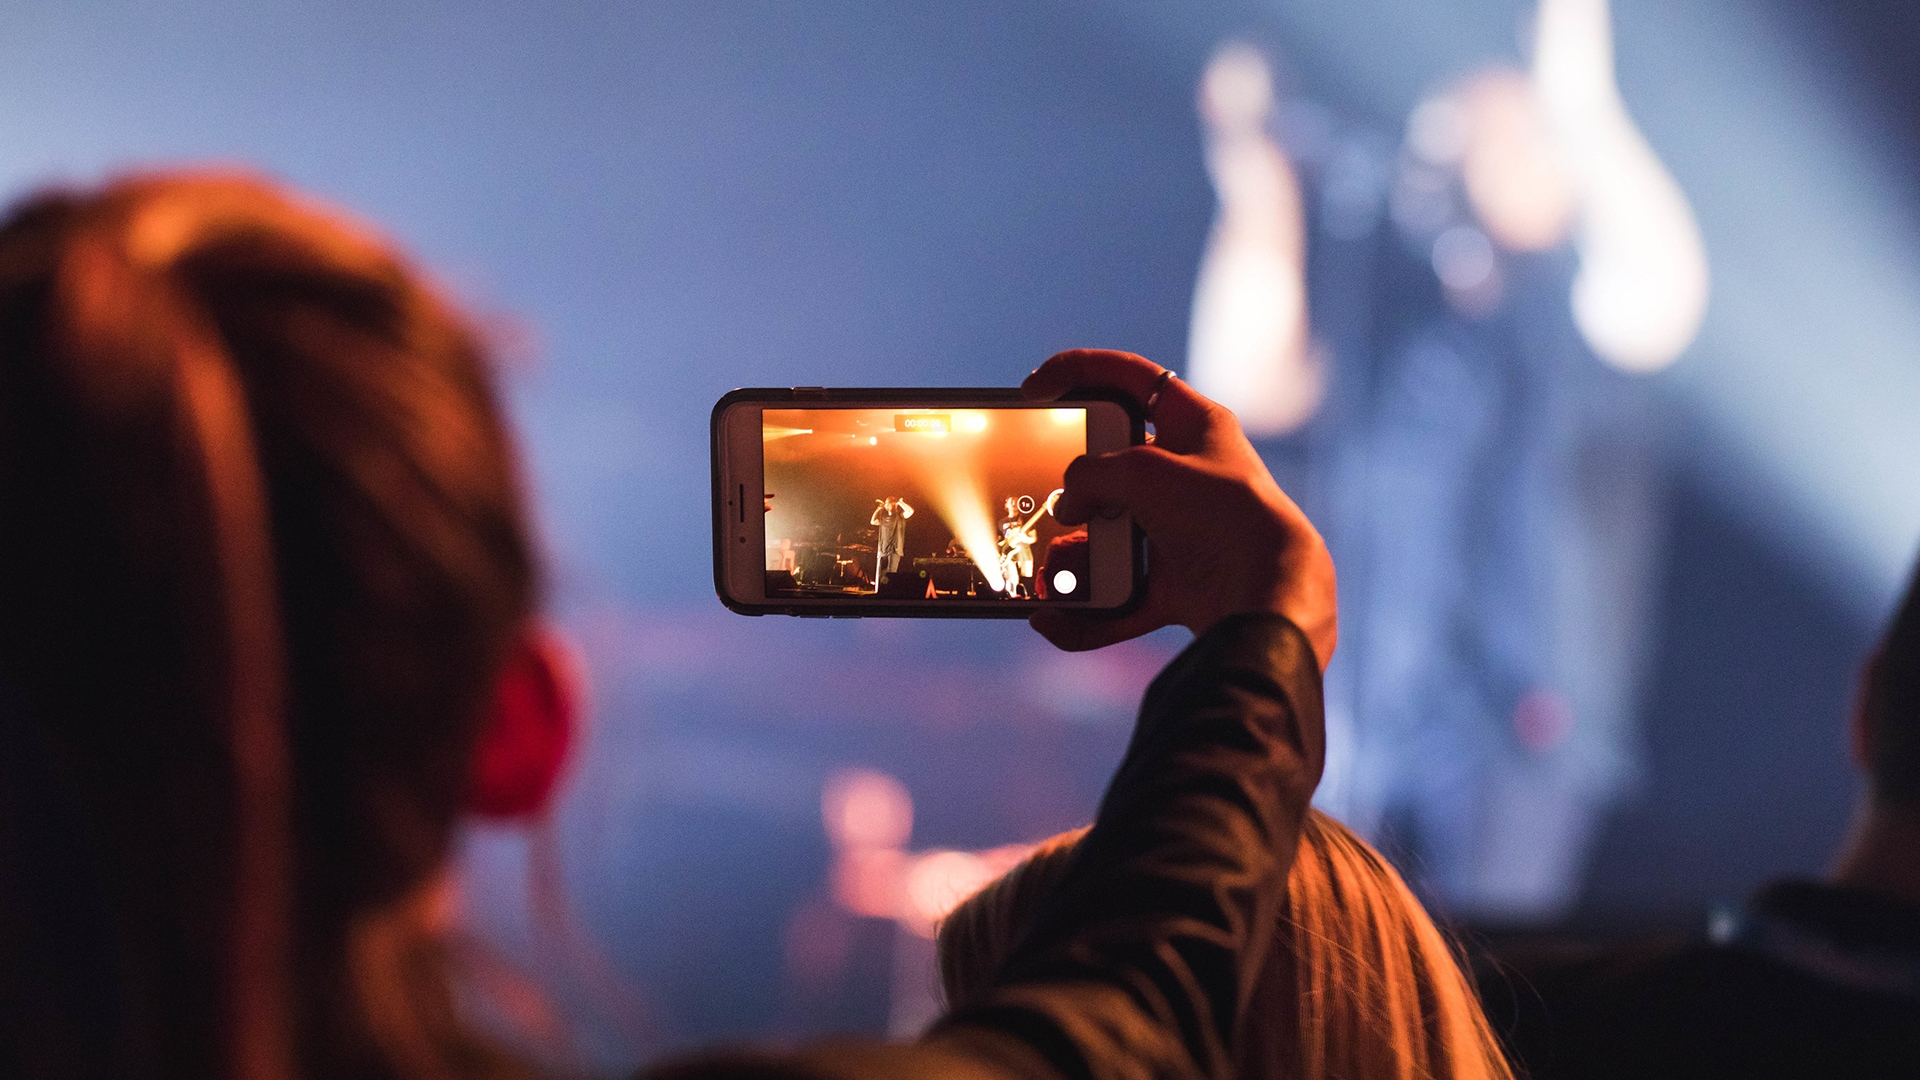 Woman taking photo of concert with phone